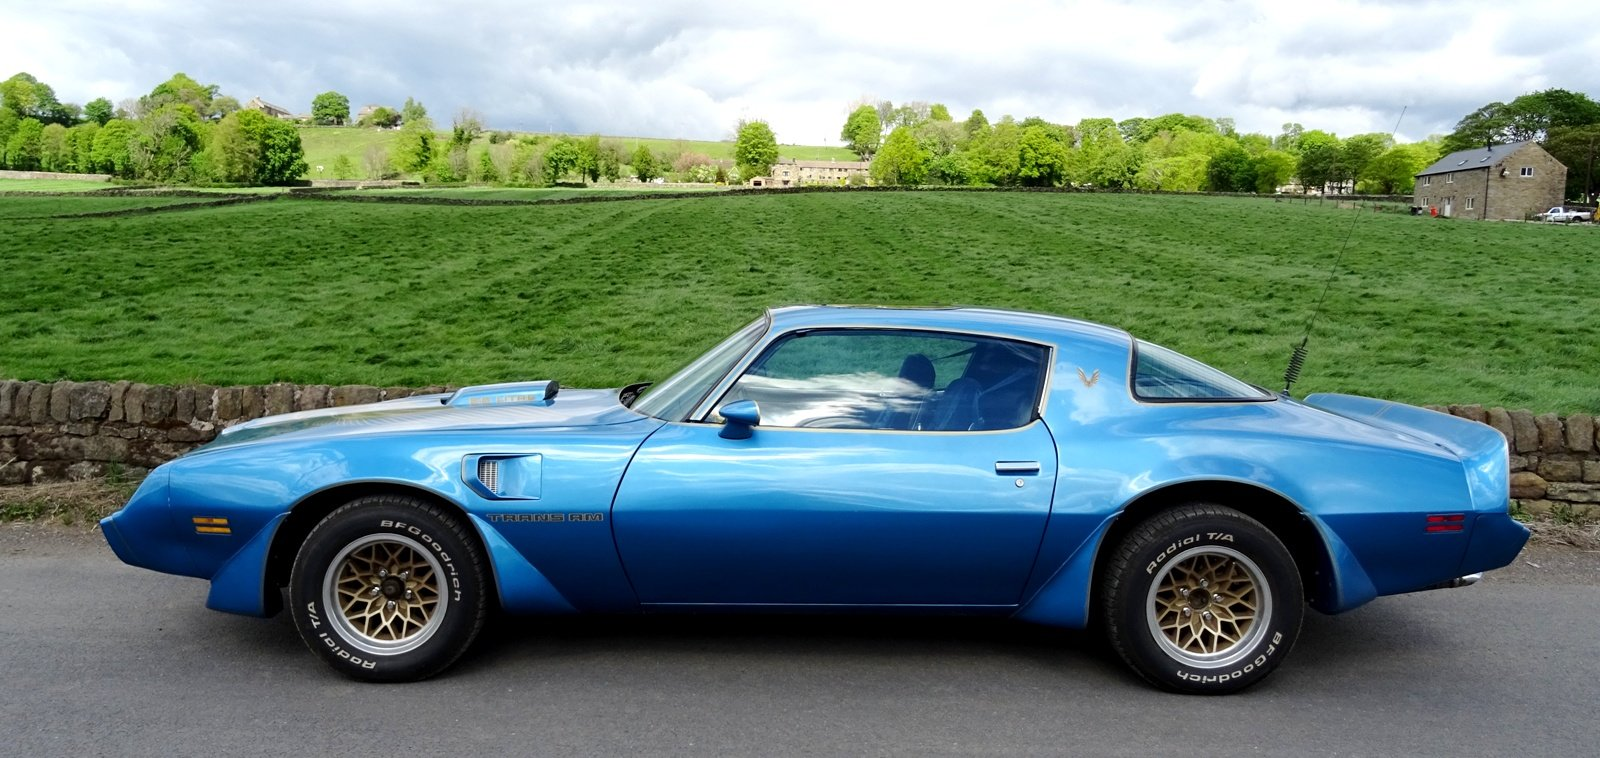 1980 PONTIAC FIREBIRD TRANS AM 6.6 LITRE V8 AMERICAN MUSCLE CAR For Sale (picture 4 of 6)